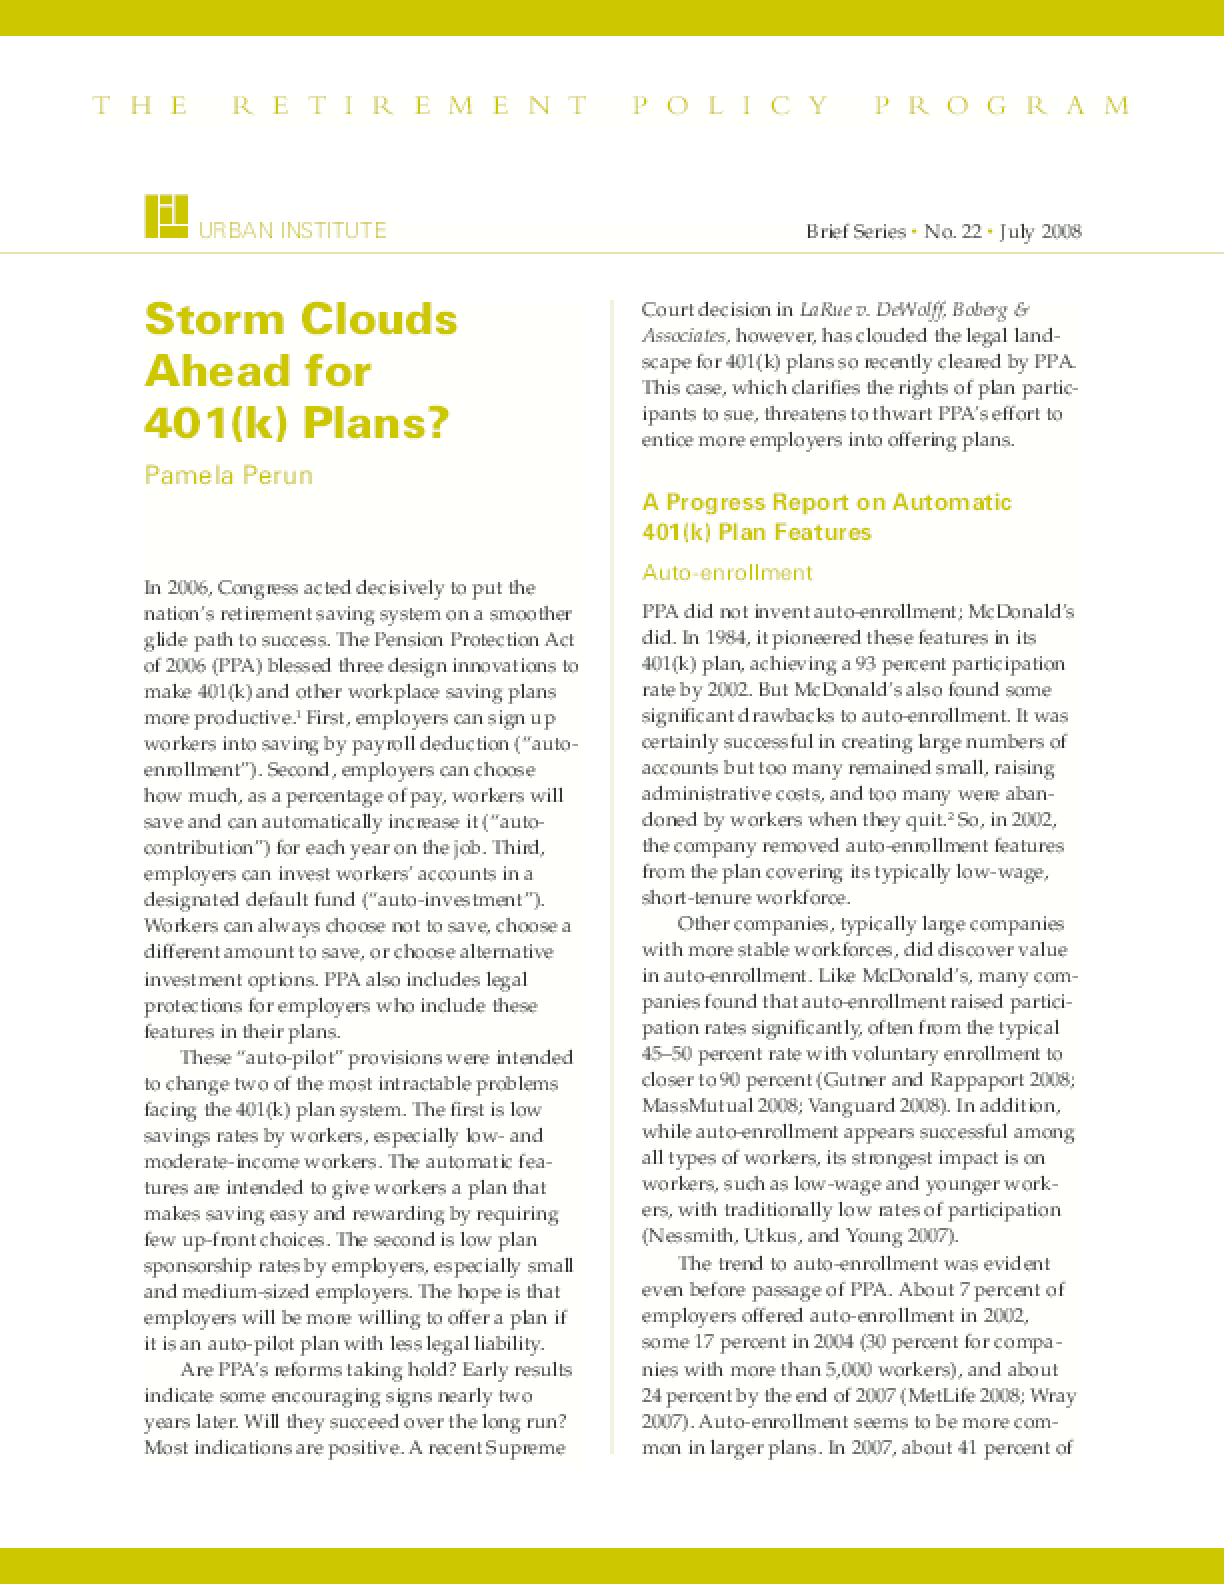 Storm Clouds Ahead for 401(k) Plans?